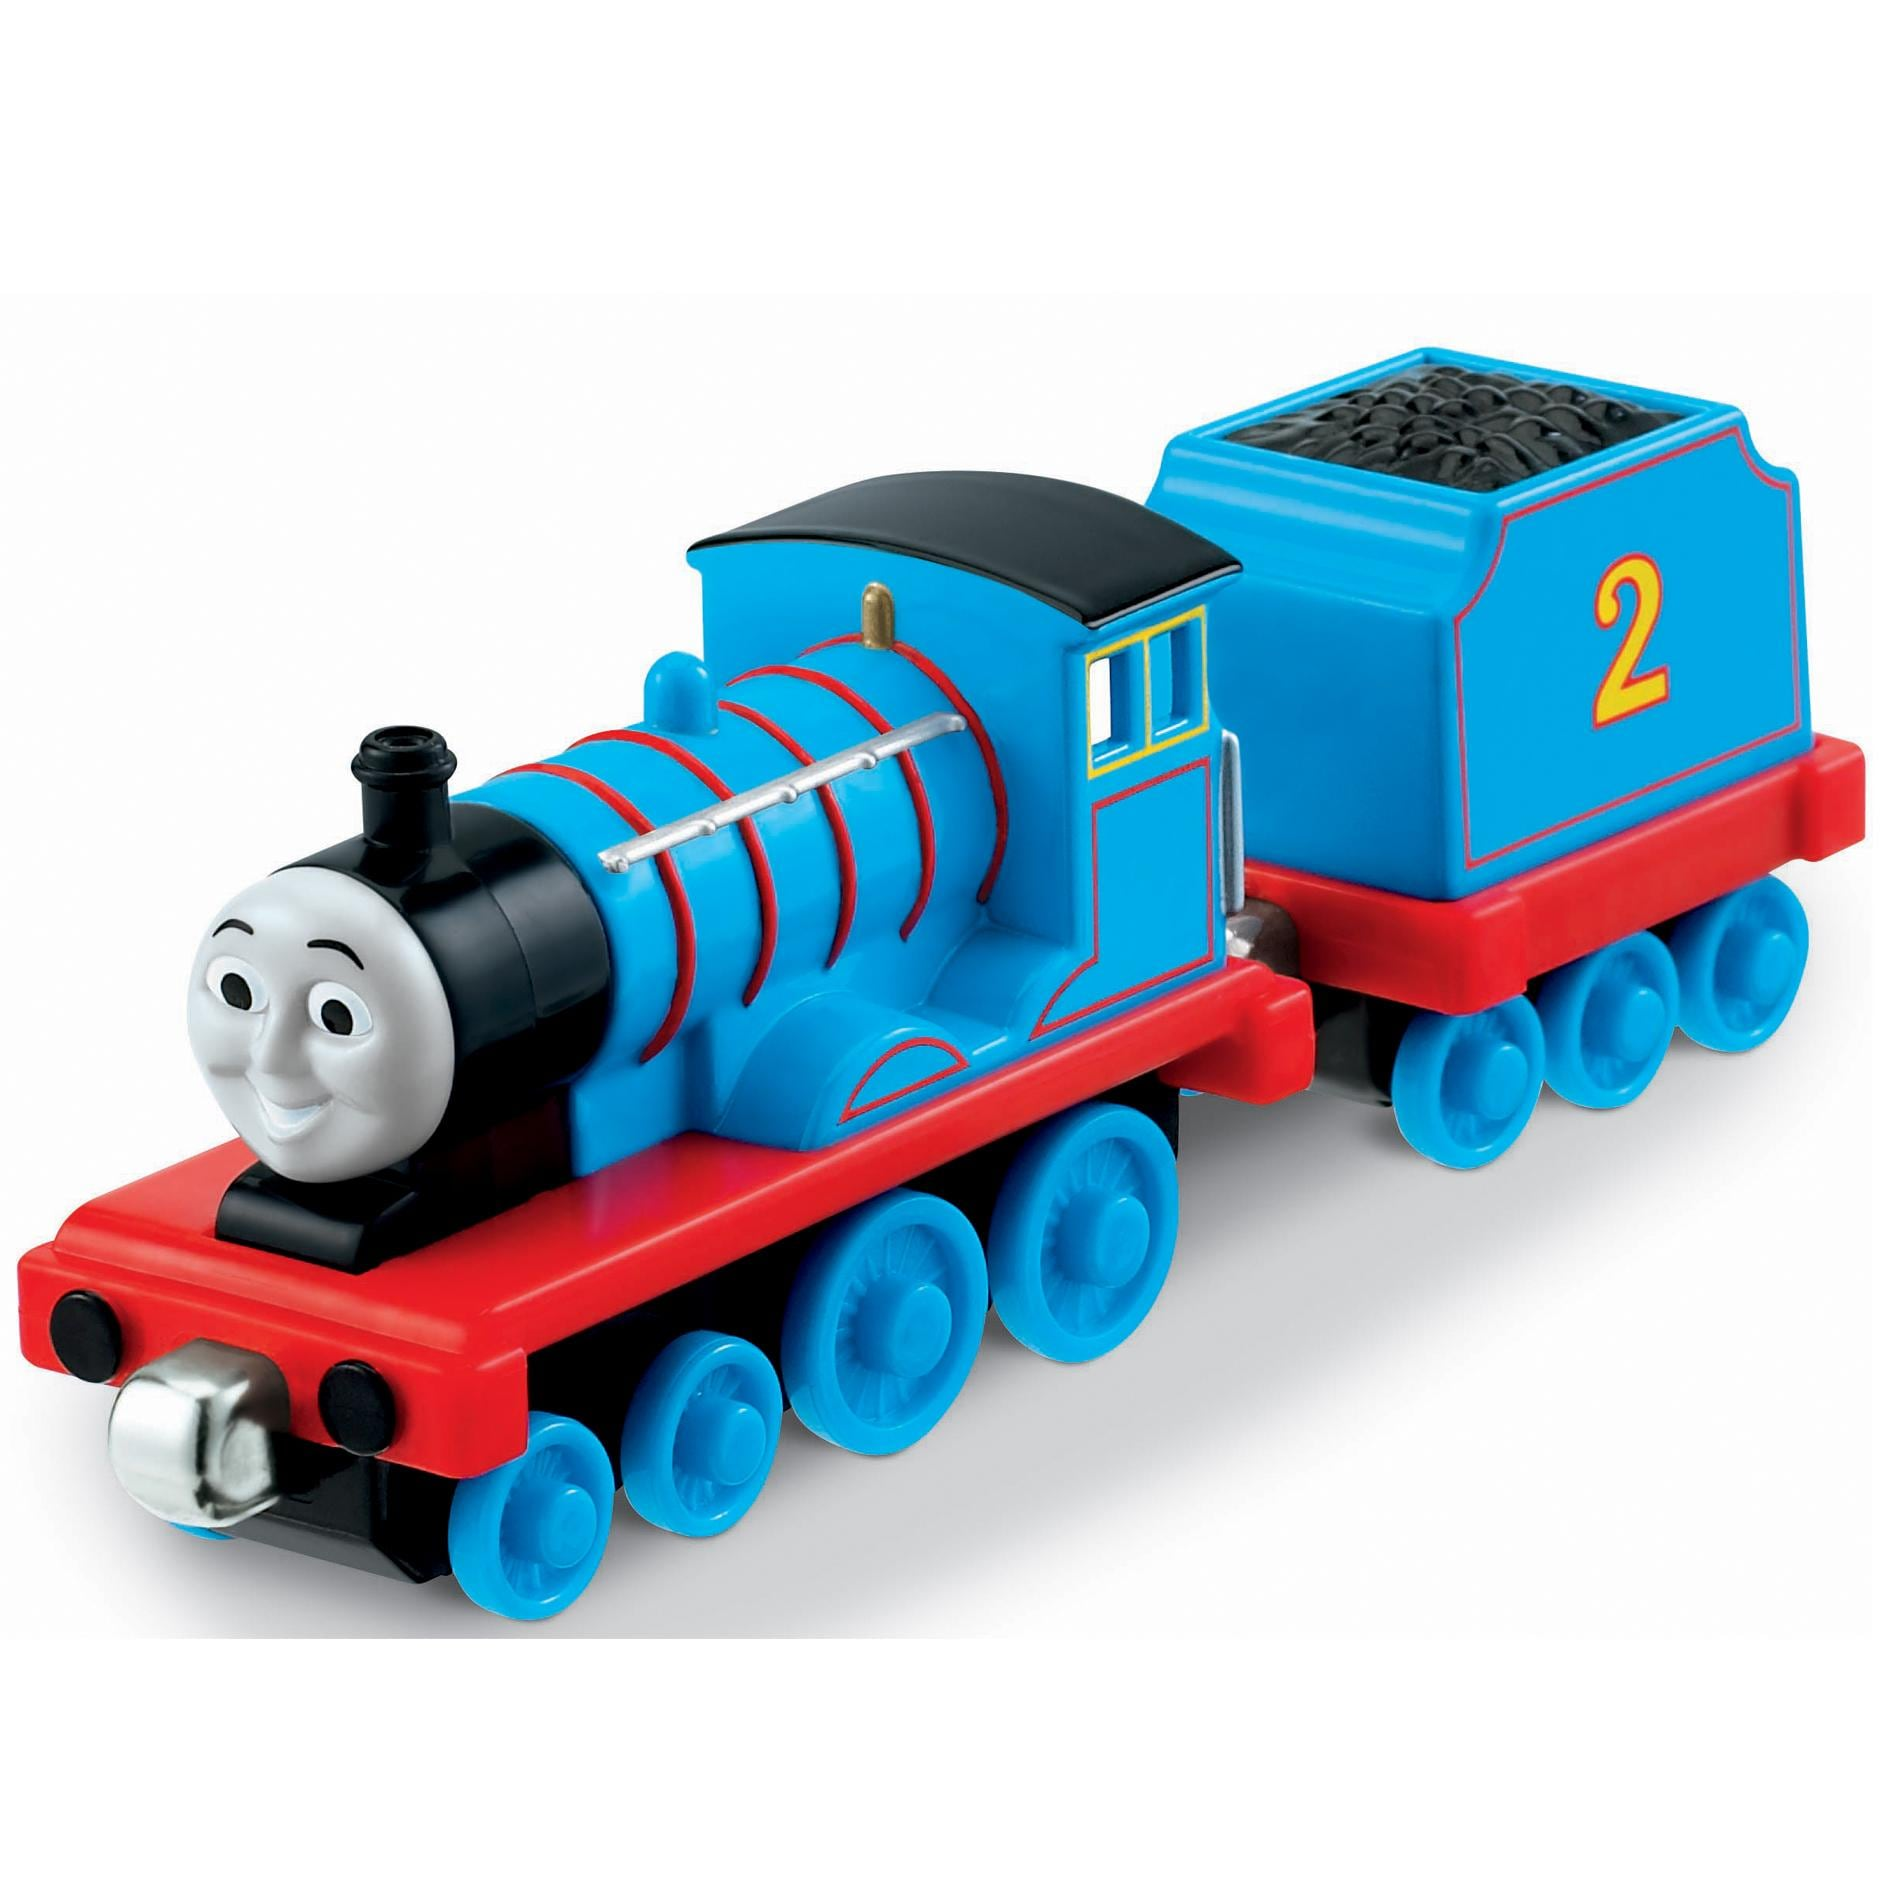 Best Thomas And Friends Toys And Trains : Fisher price thomas and friends small edward toy train